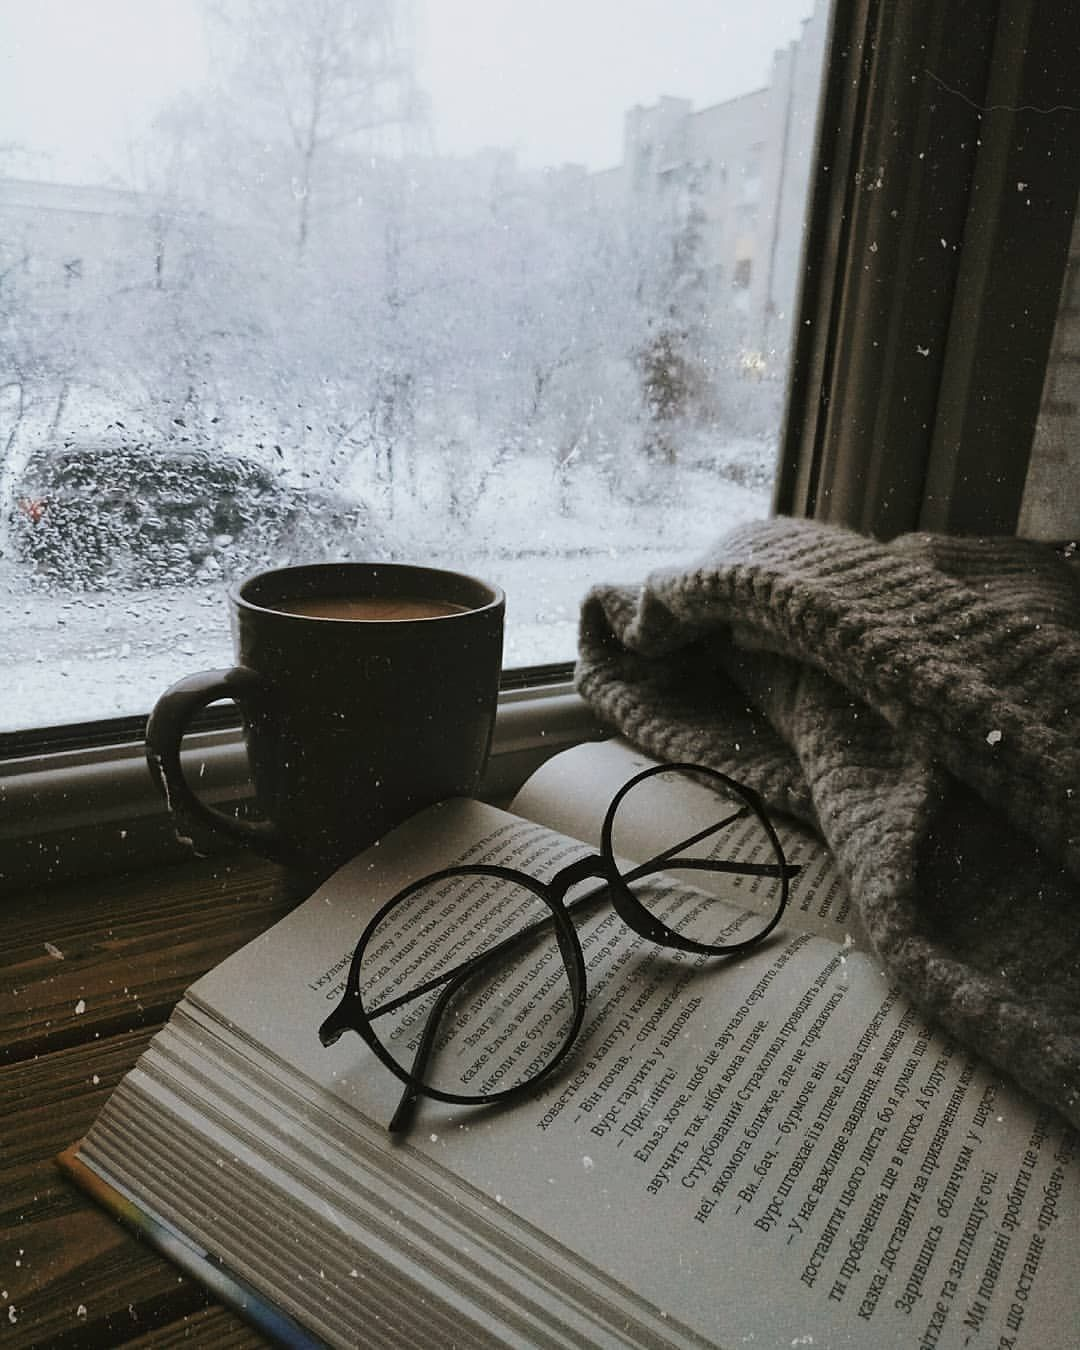 Don T You Just Love Having A Good Book With A Warm Cup Of Coffee When It S Snowing Winter Photography Book Photography Winter Aesthetic